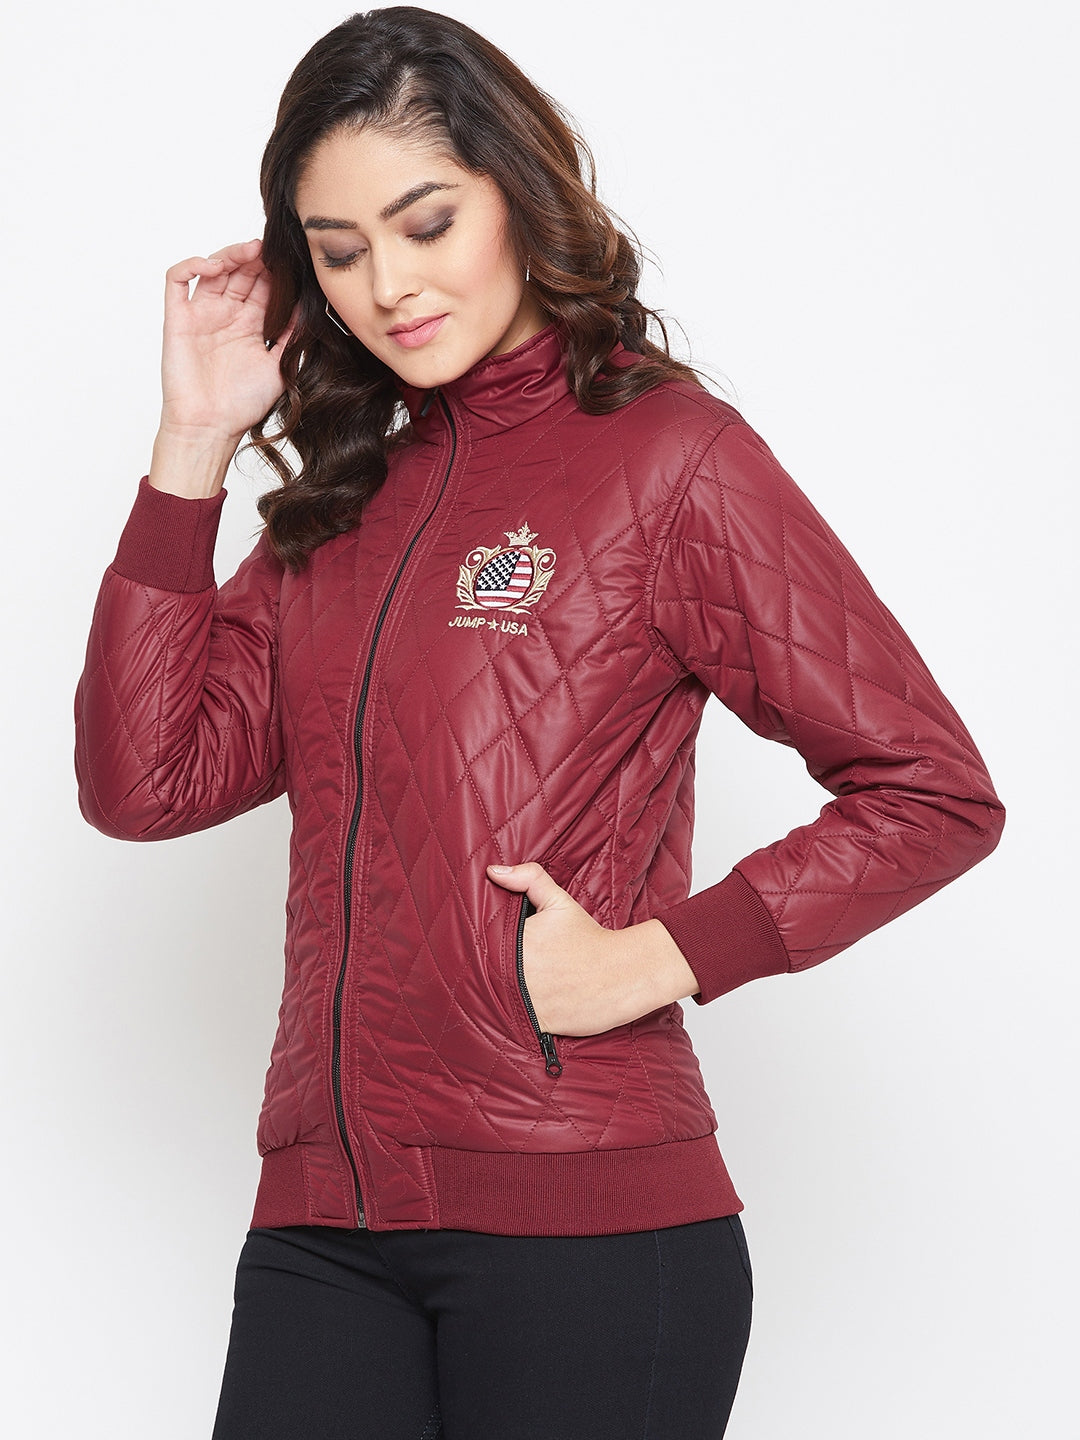 JUMP USA Women Maroon Self Design Jacket